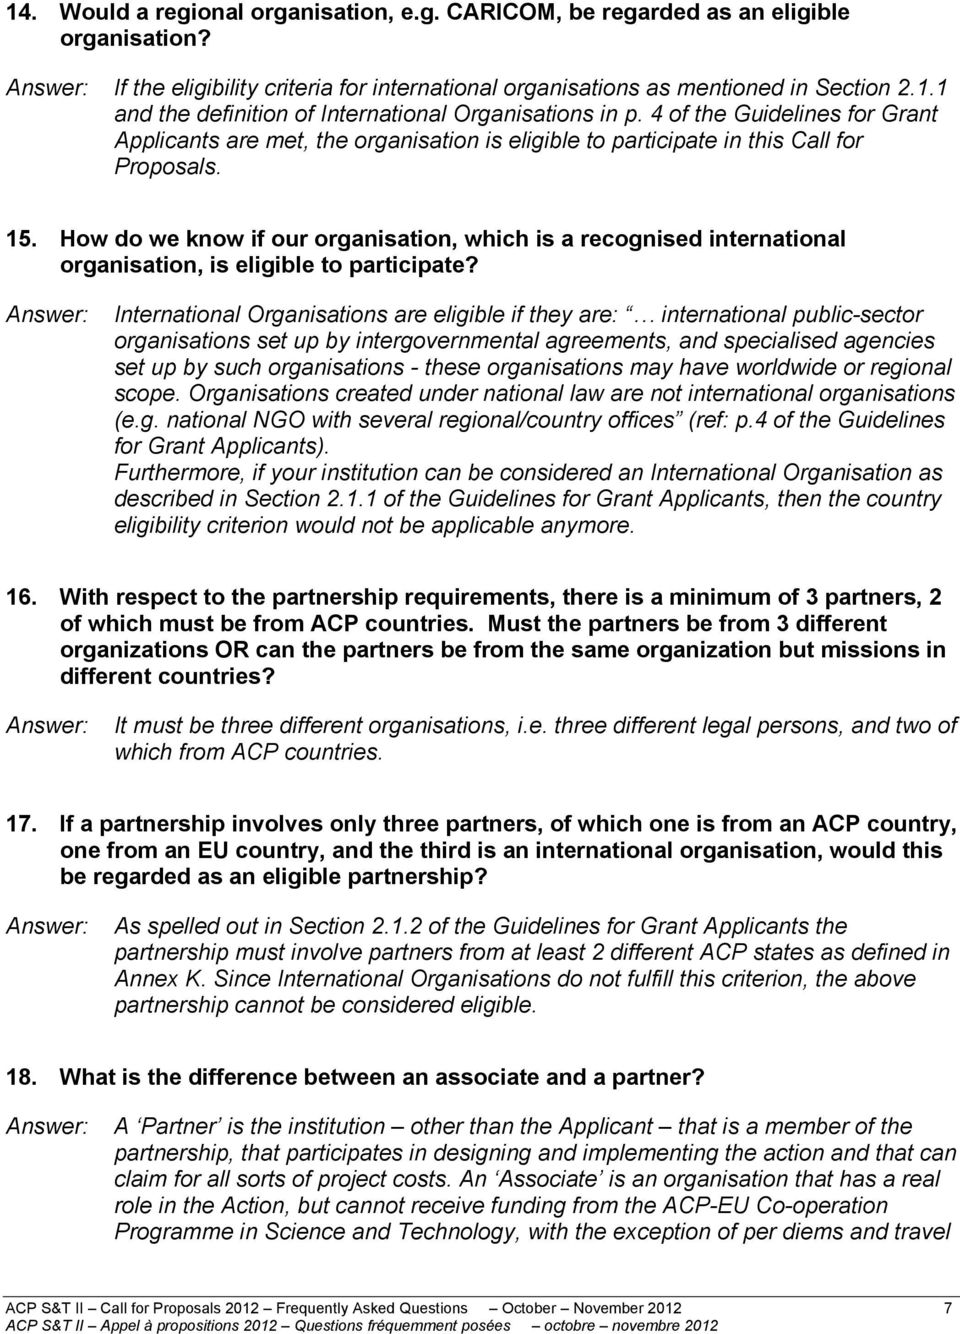 How do we know if our organisation, which is a recognised international organisation, is eligible to participate?